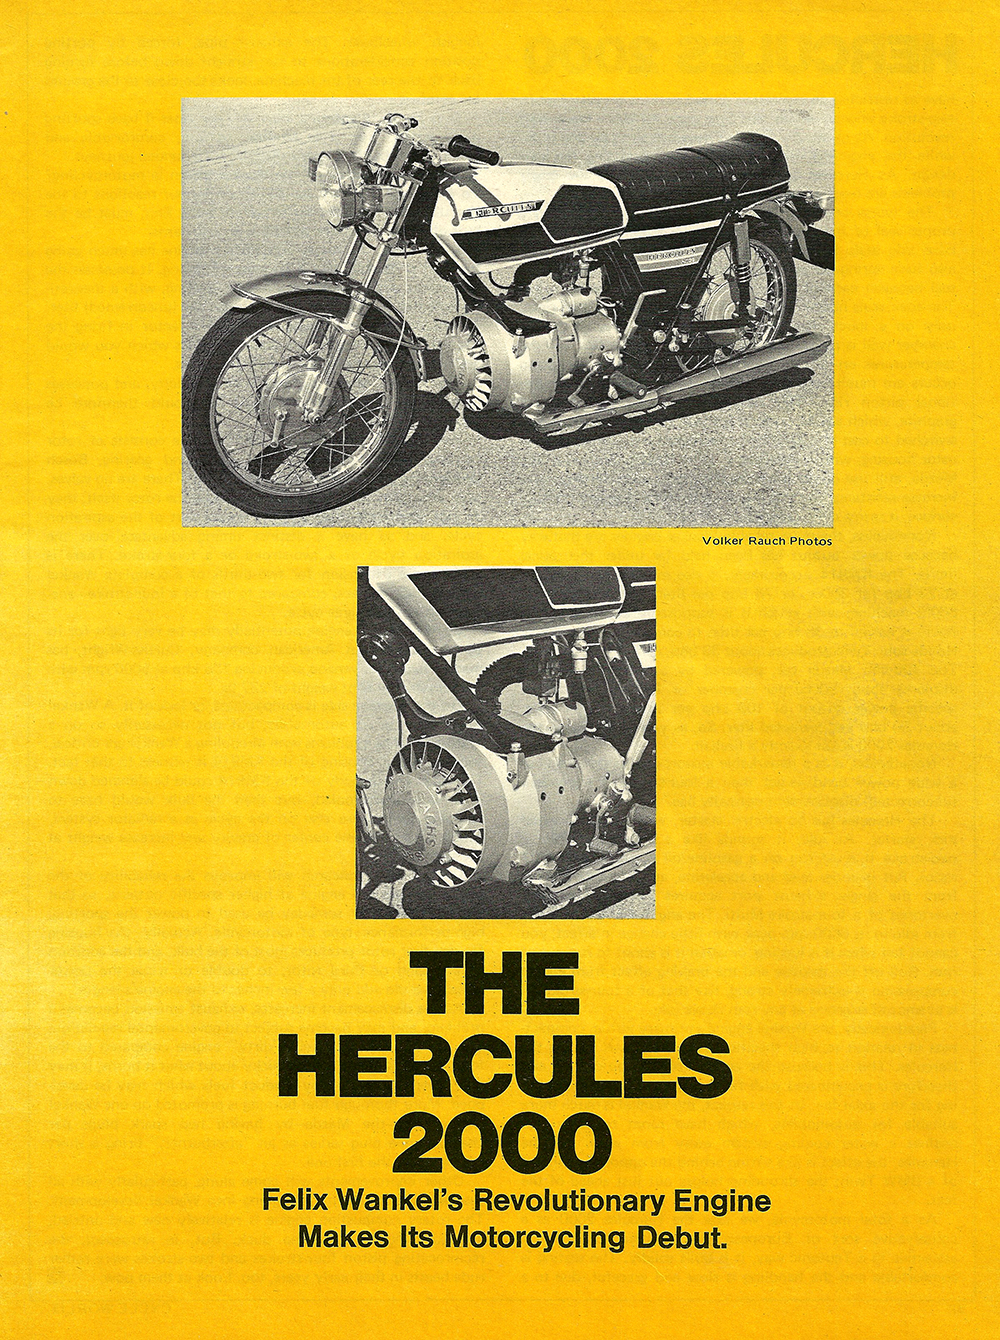 1971 Hercules 2000 road test 01.jpg